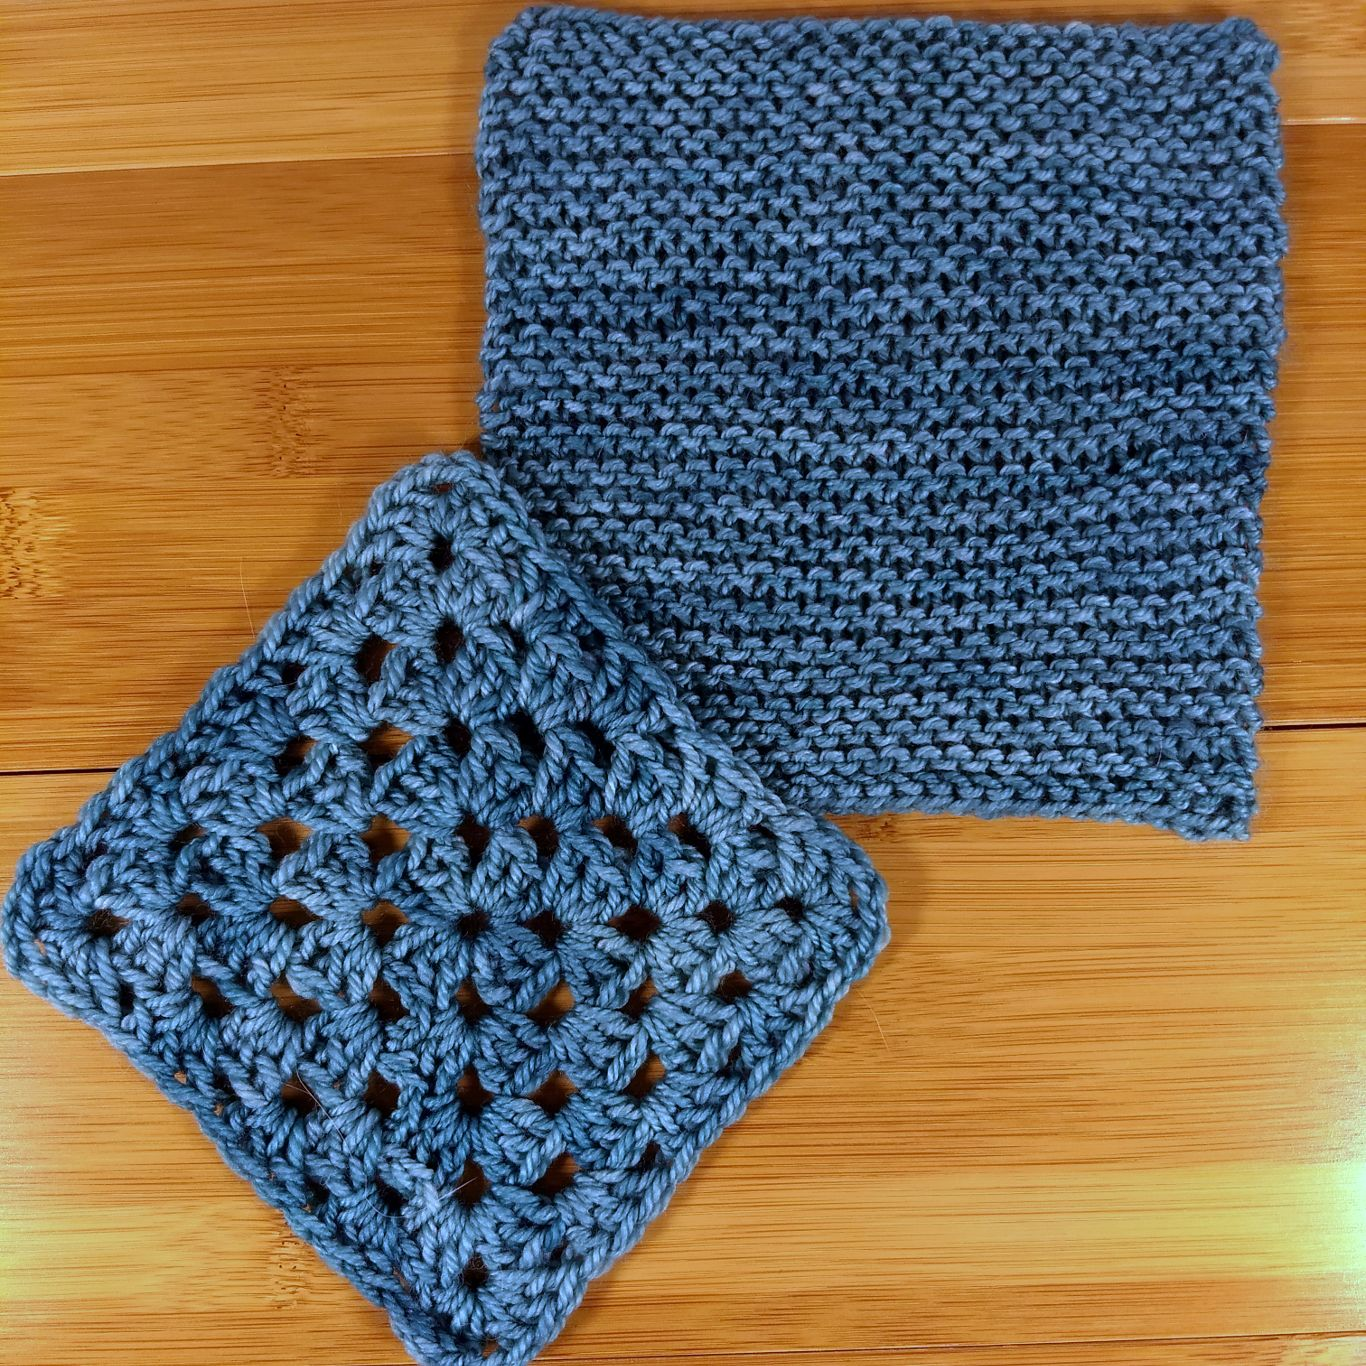 Squishy swatches, a granny square next to garter stitch.